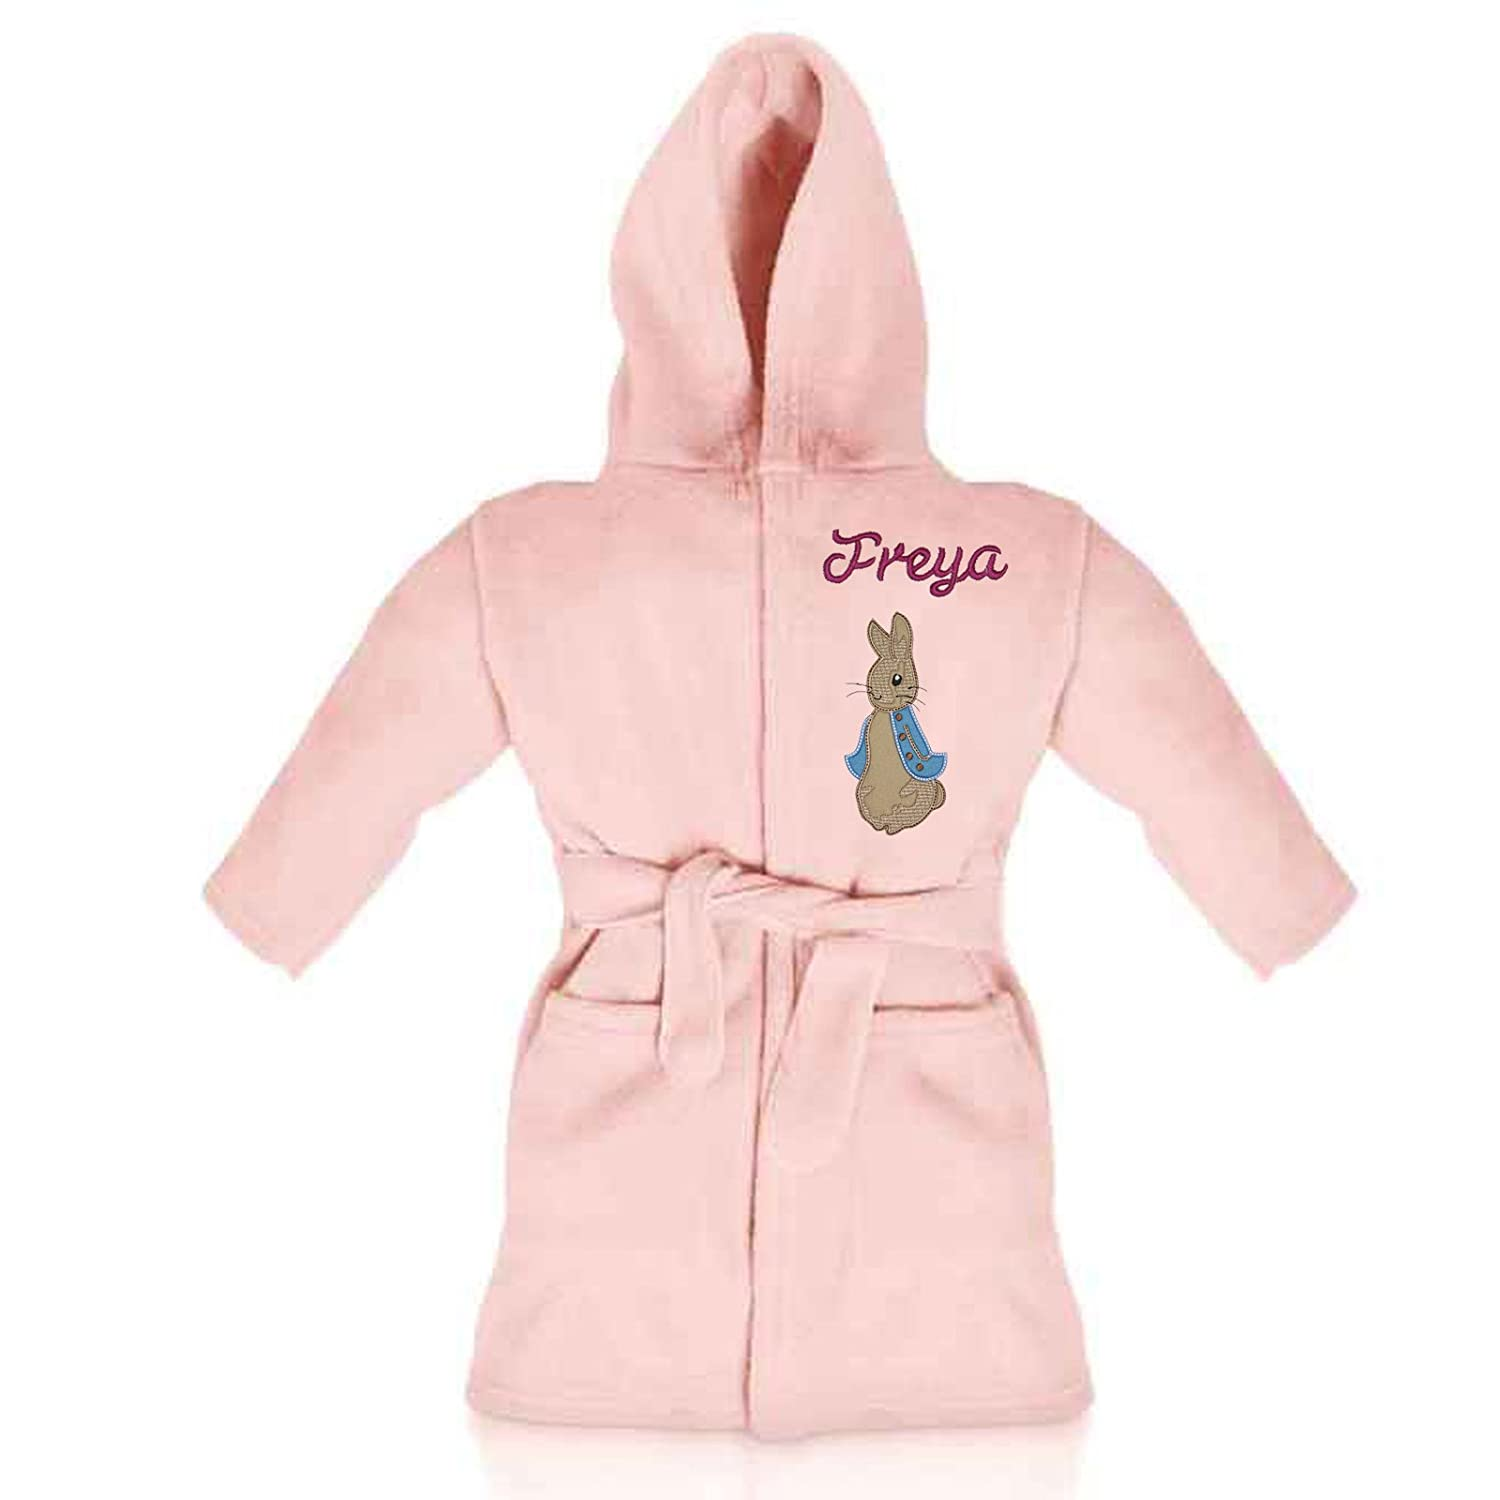 Peter Rabbit Personalised & Applique Super Soft Fleece Dressing Gown/Bathrobe (Baby Pink) Peter Rabbit Pink